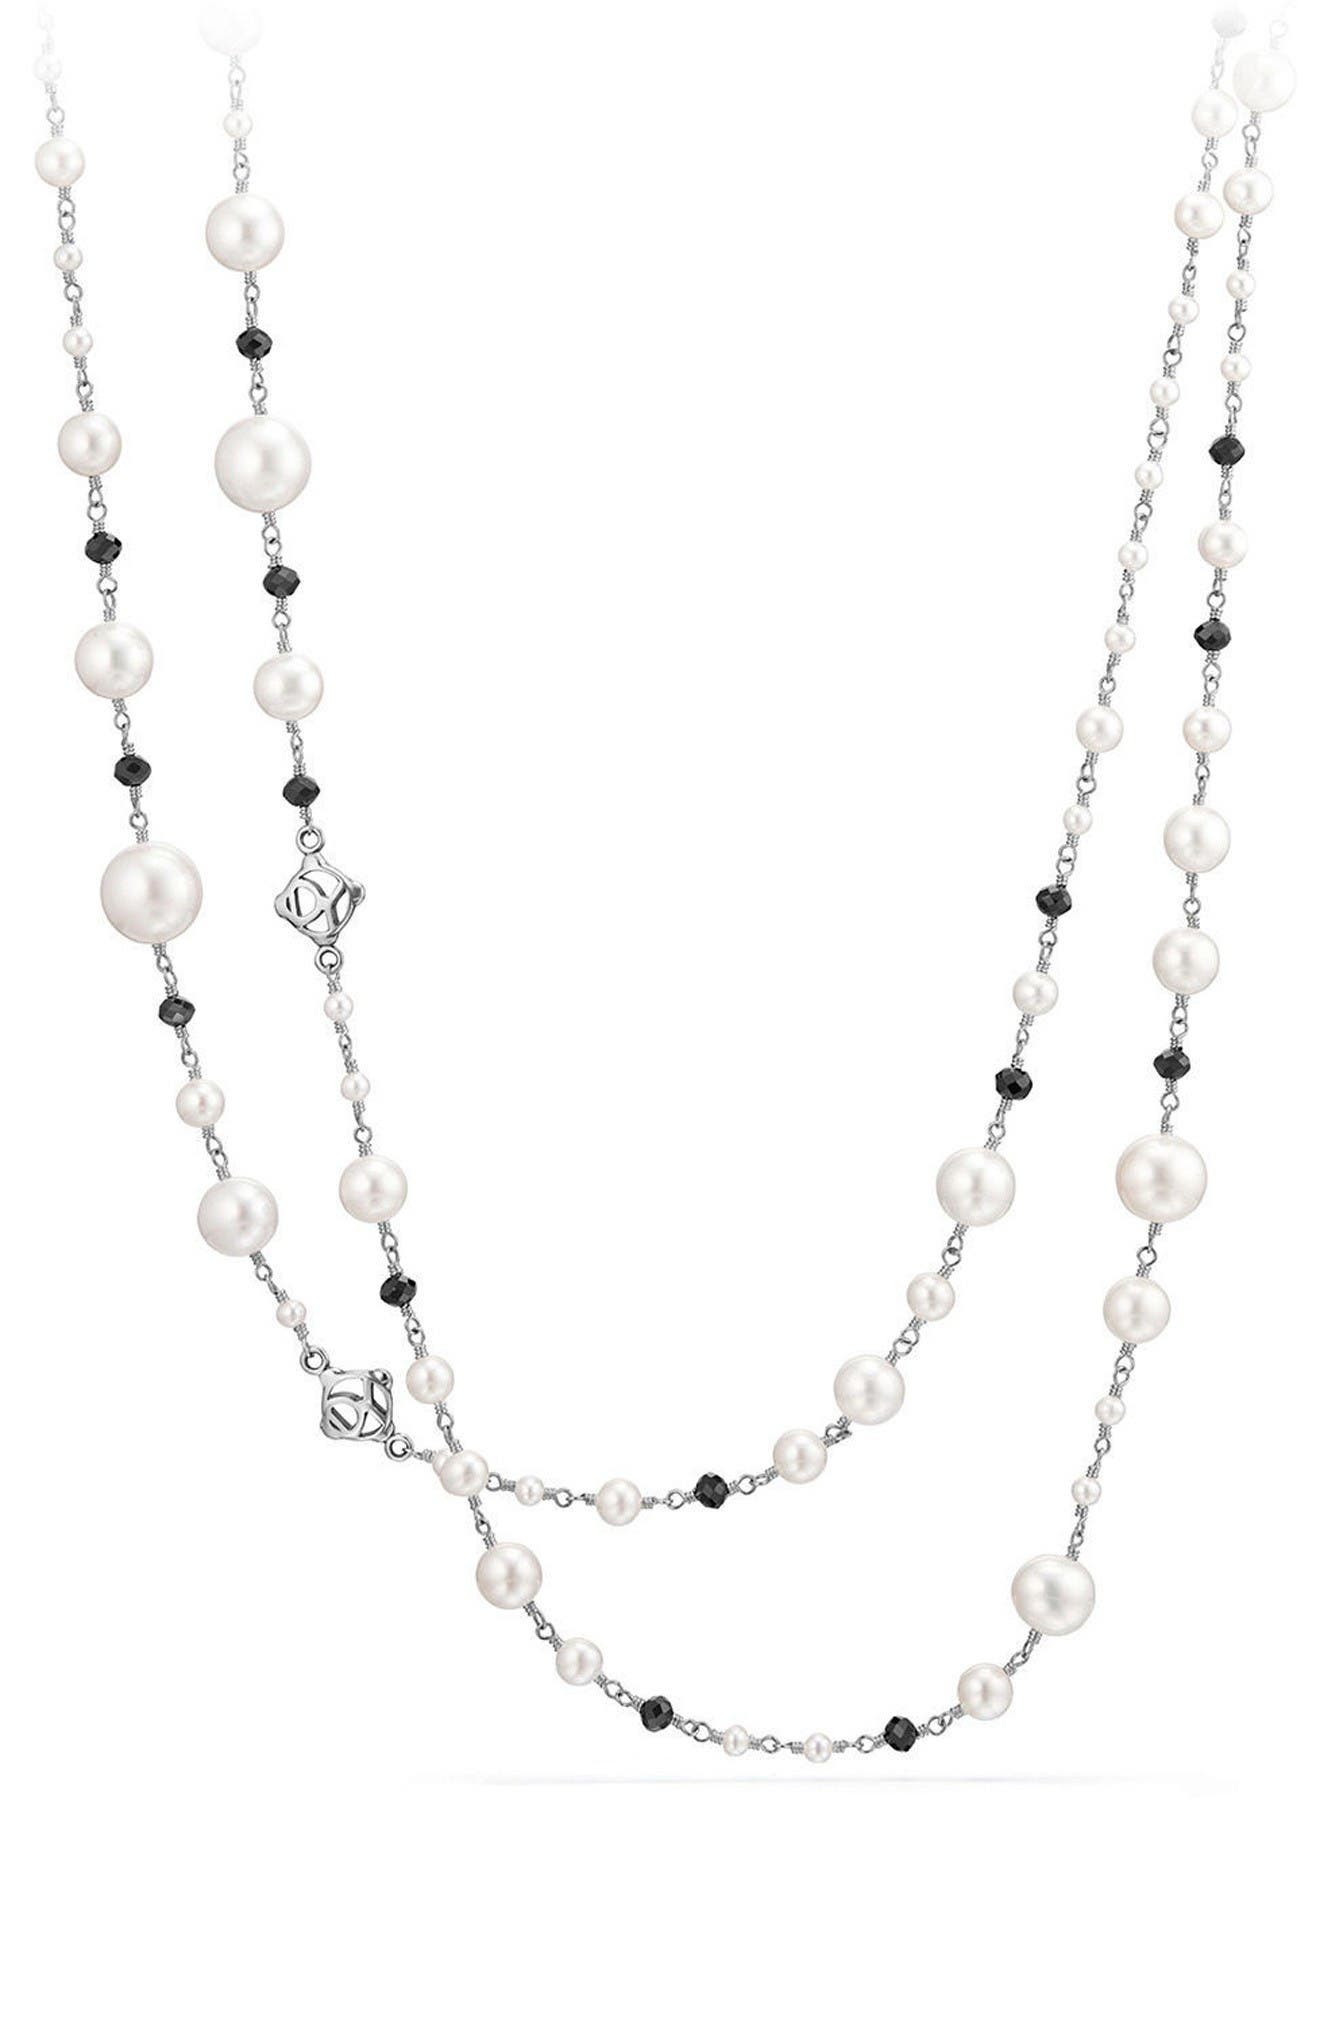 David Yurman Solari Pearl & Bead Necklace